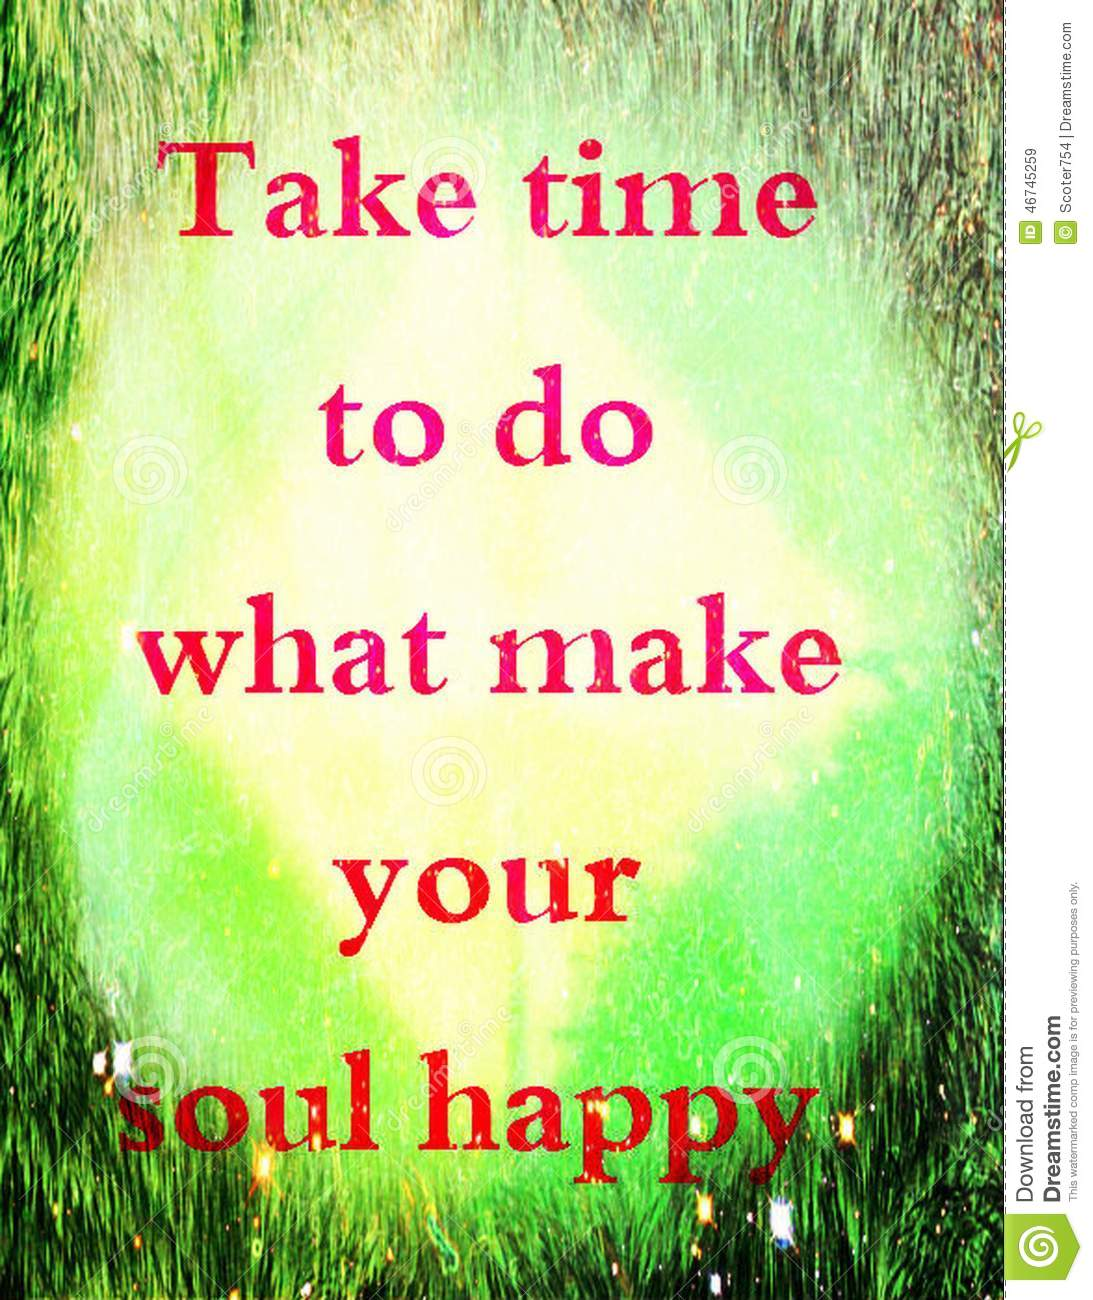 Happy Life Quotes | Quotes About Life Take Time To Do What Make Your Soul Happy Stock